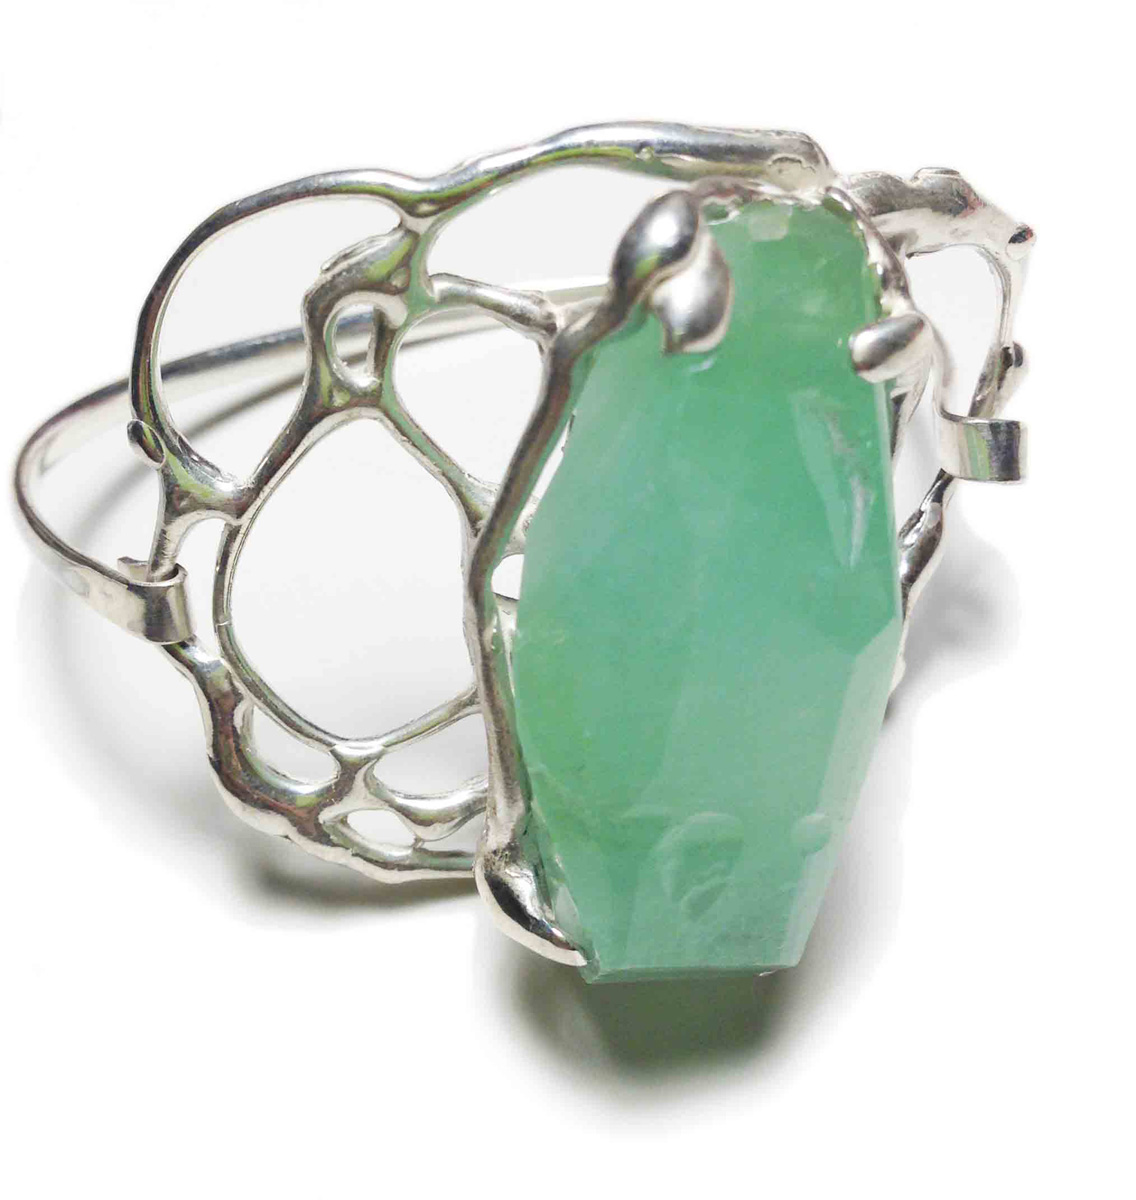 Green calcite bracelet